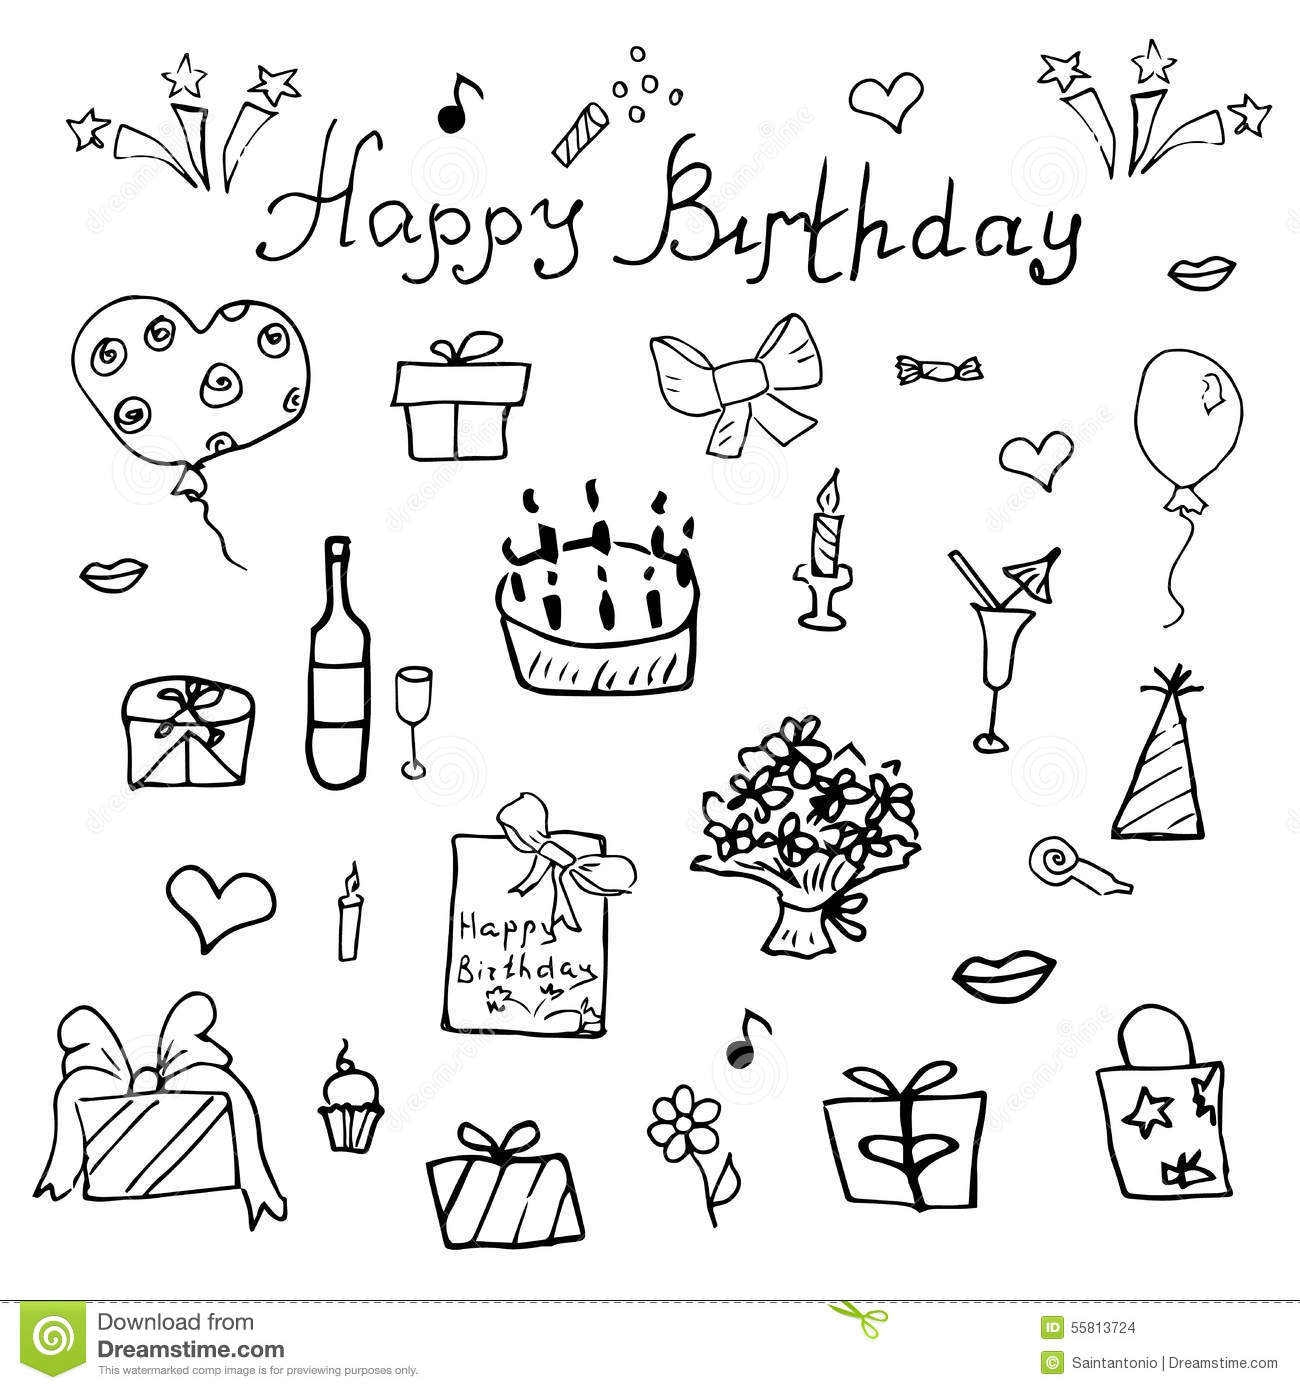 birthday cake simple drawing ; birthday-elements-hand-drawn-set-birthday-cake-balloons-gift-festive-attributes-children-drawing-doodle-collection-i-55813724